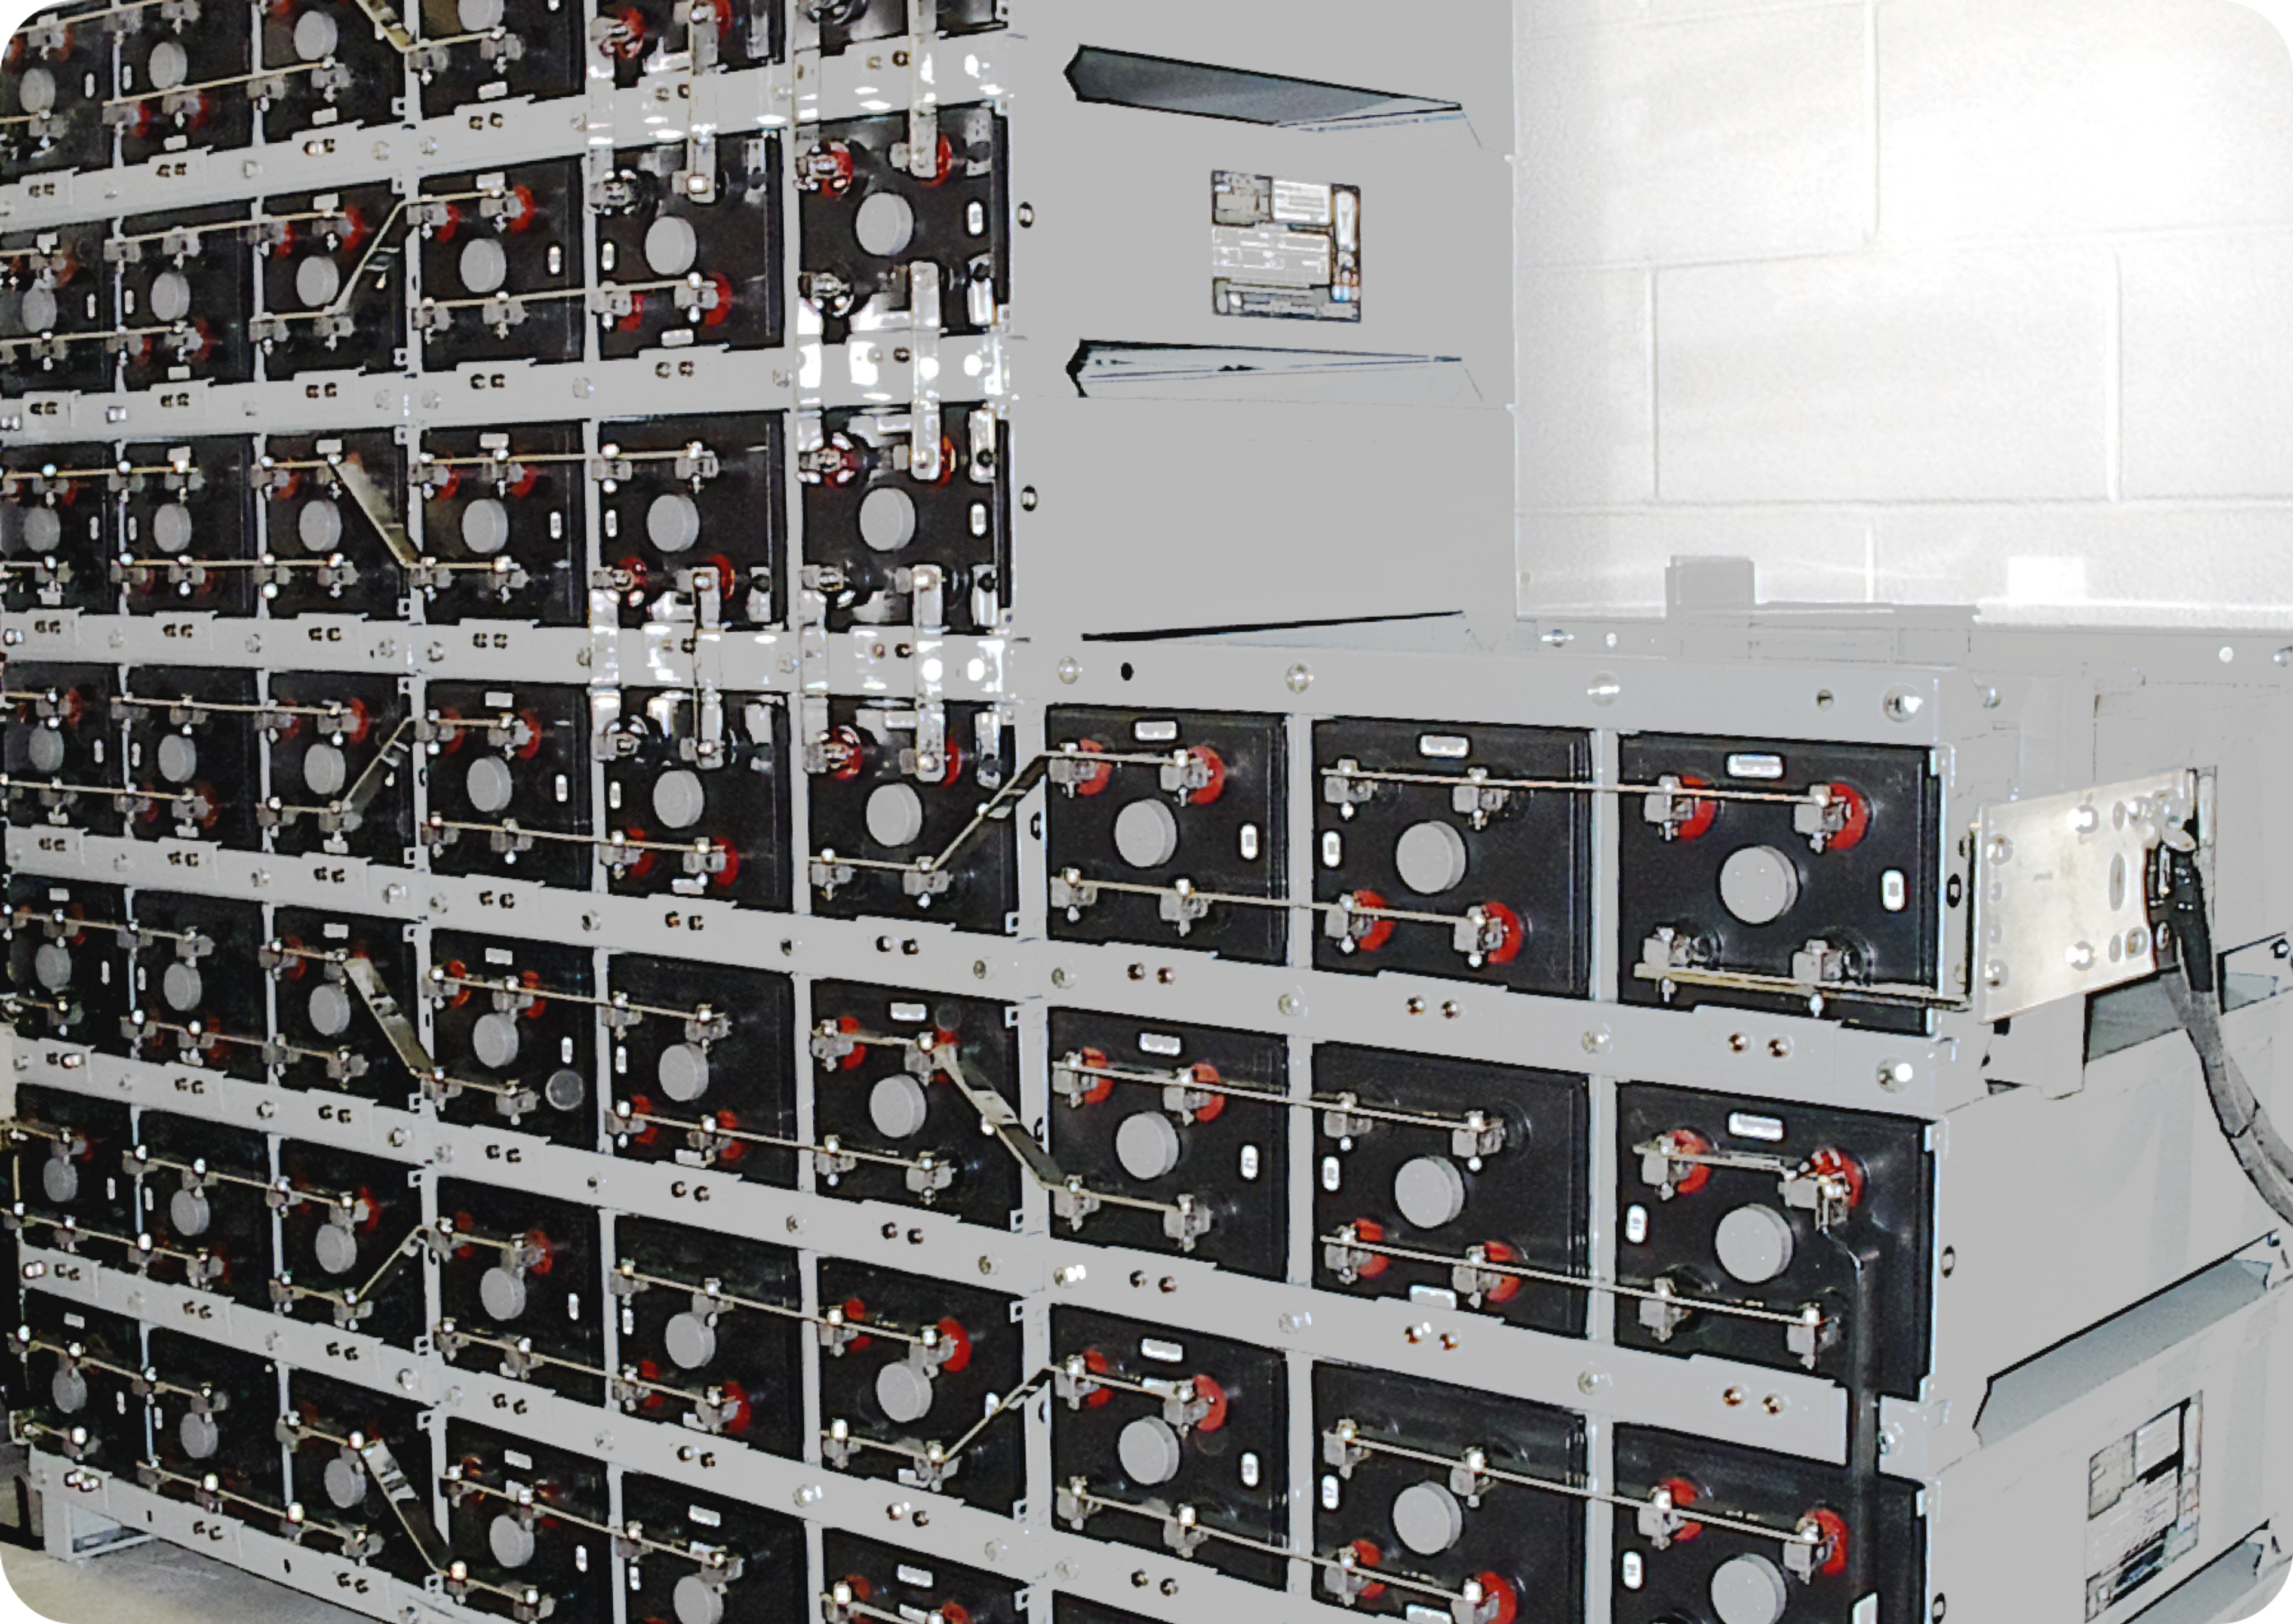 Picture of car battery room sowing 43 car batteries